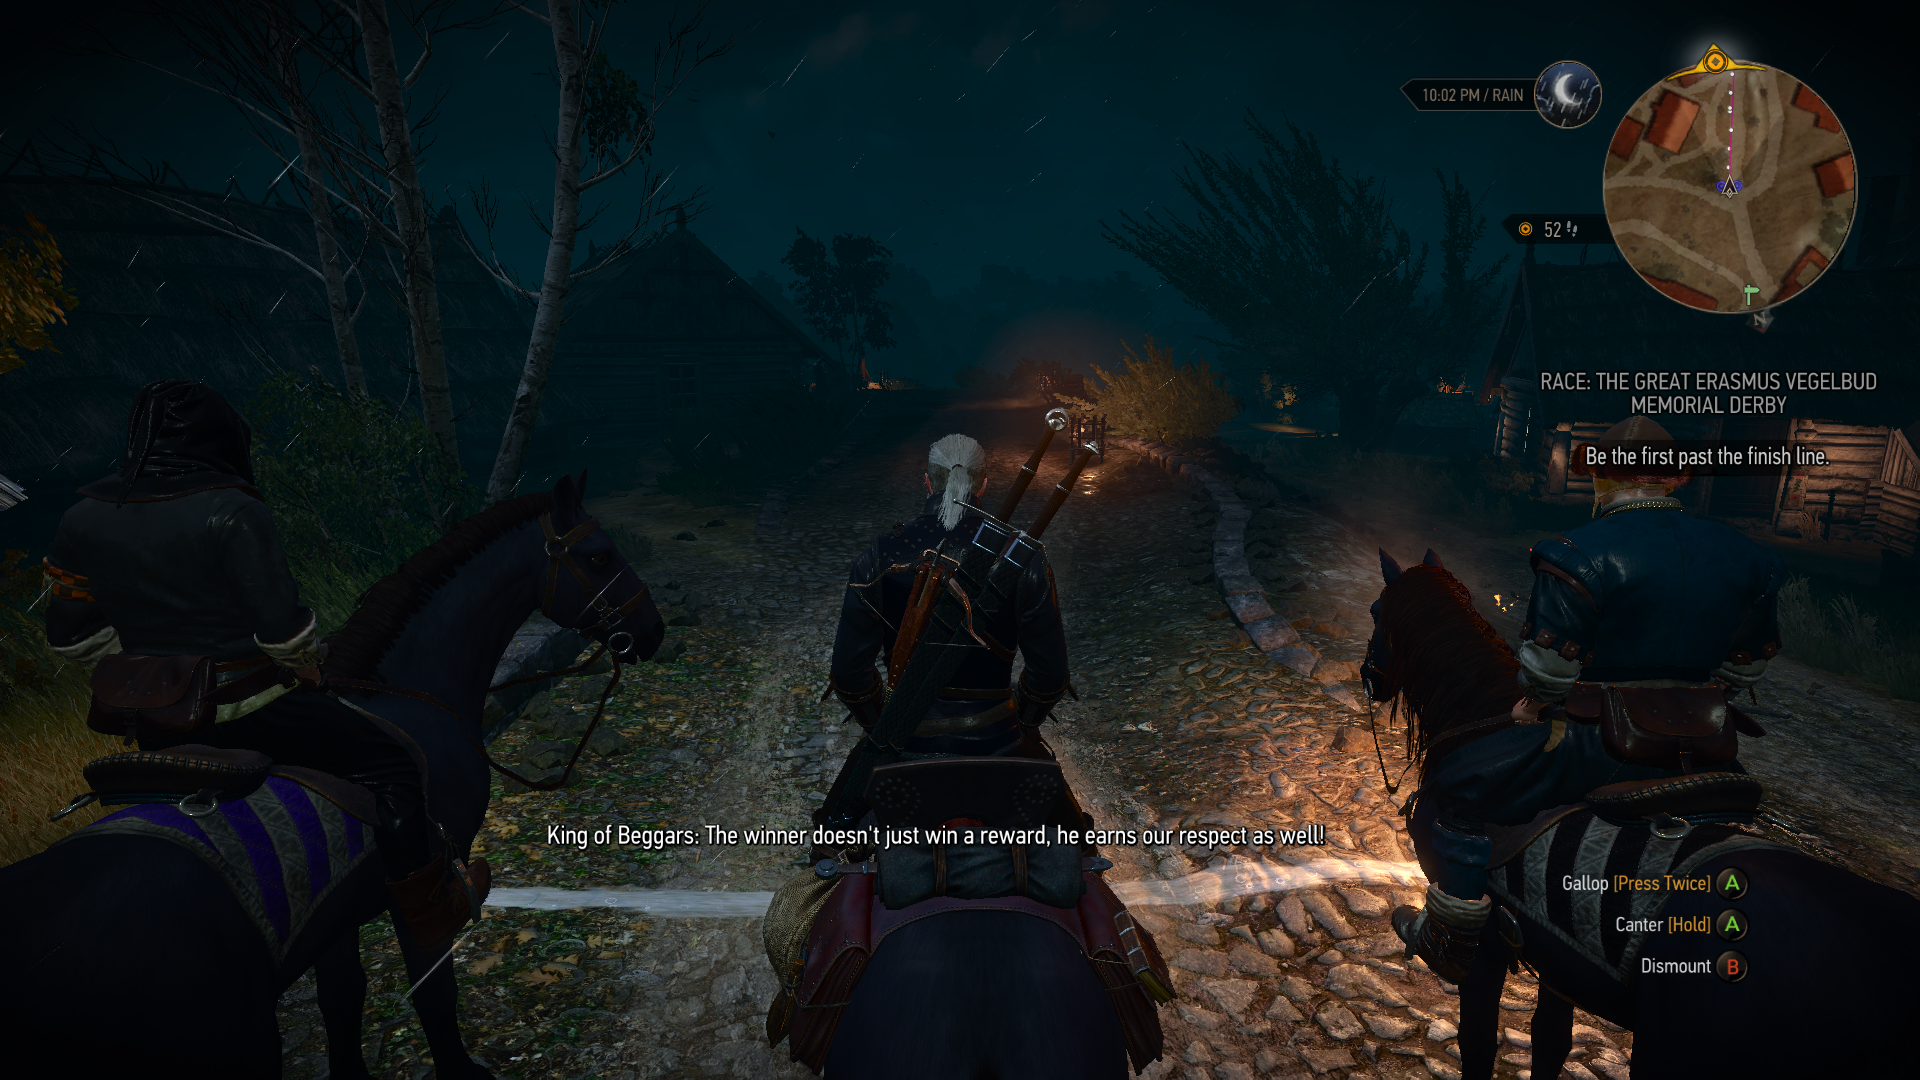 witcher 3 palio paul walker race